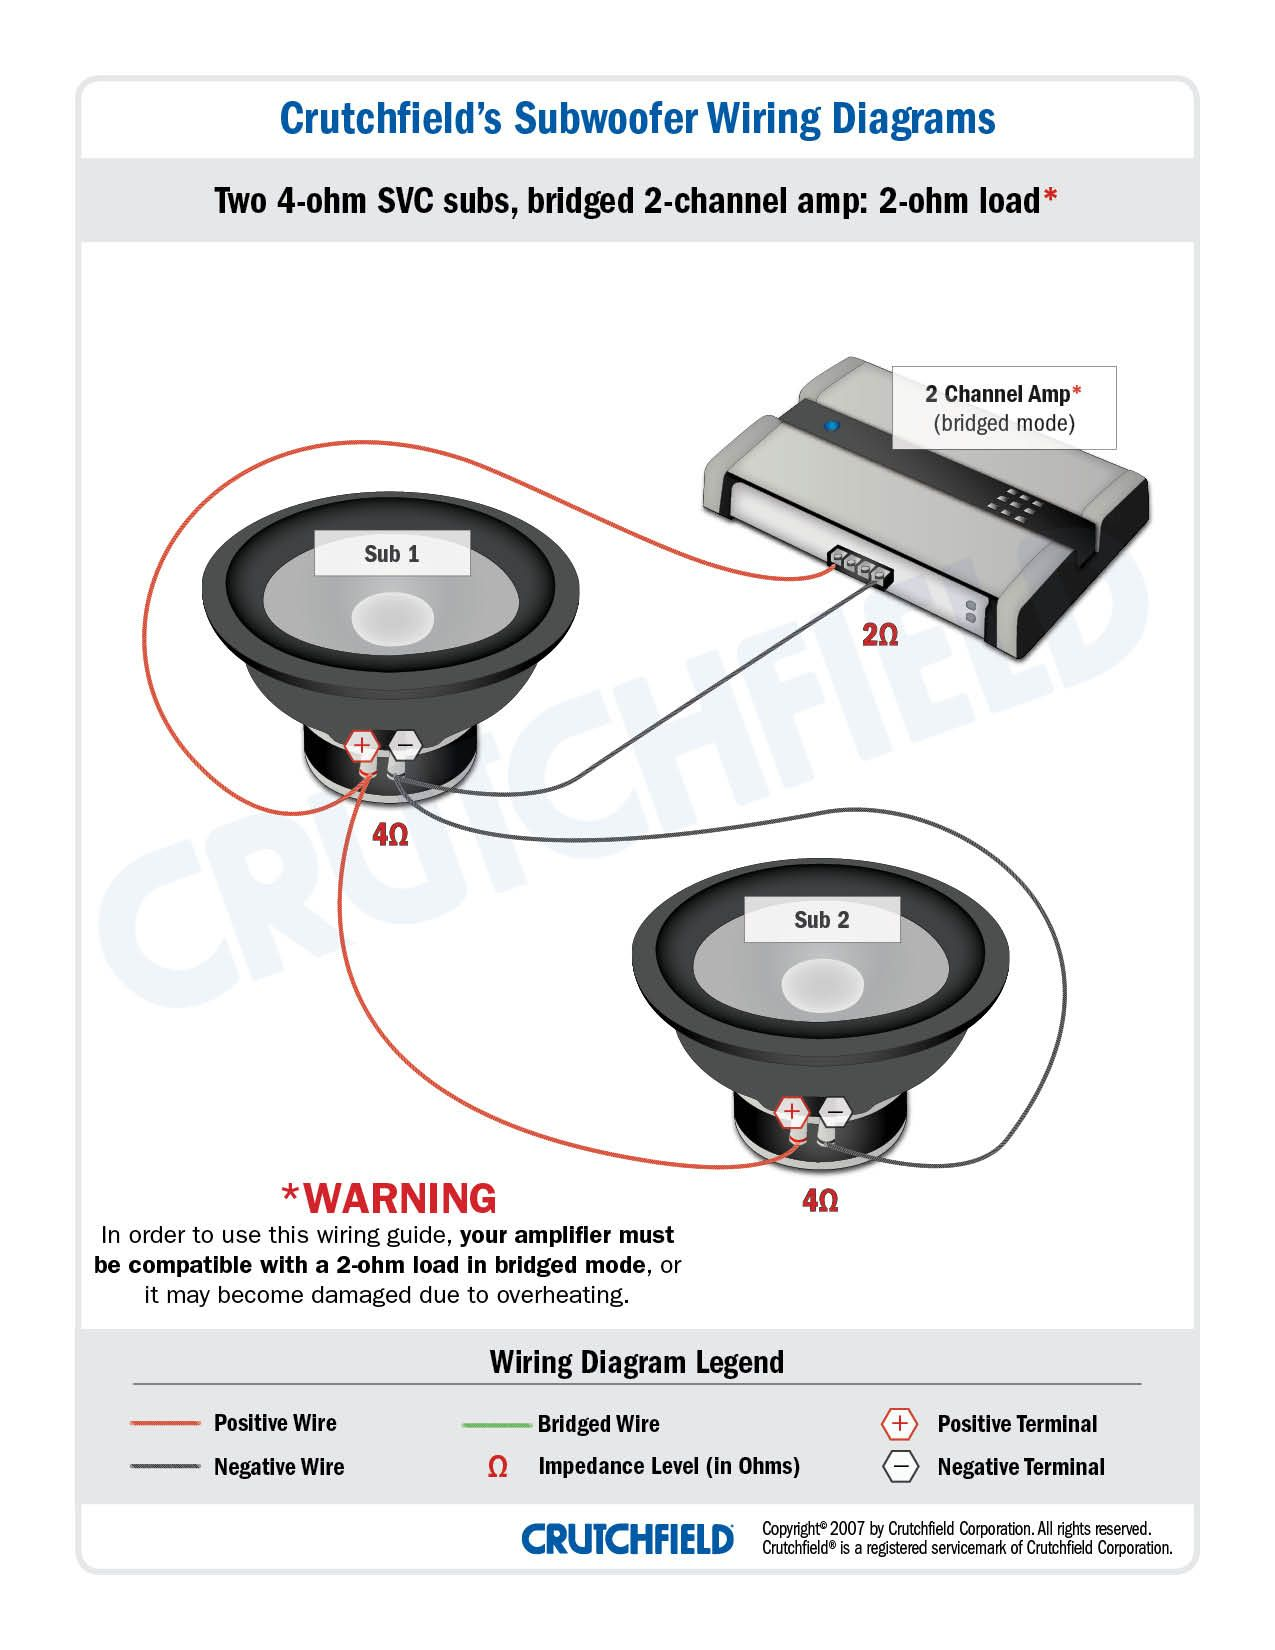 Subwoofer wiring diagrams — how to wire your subs | Subwoofer wiring,  Subwoofer, Car audio installationPinterest